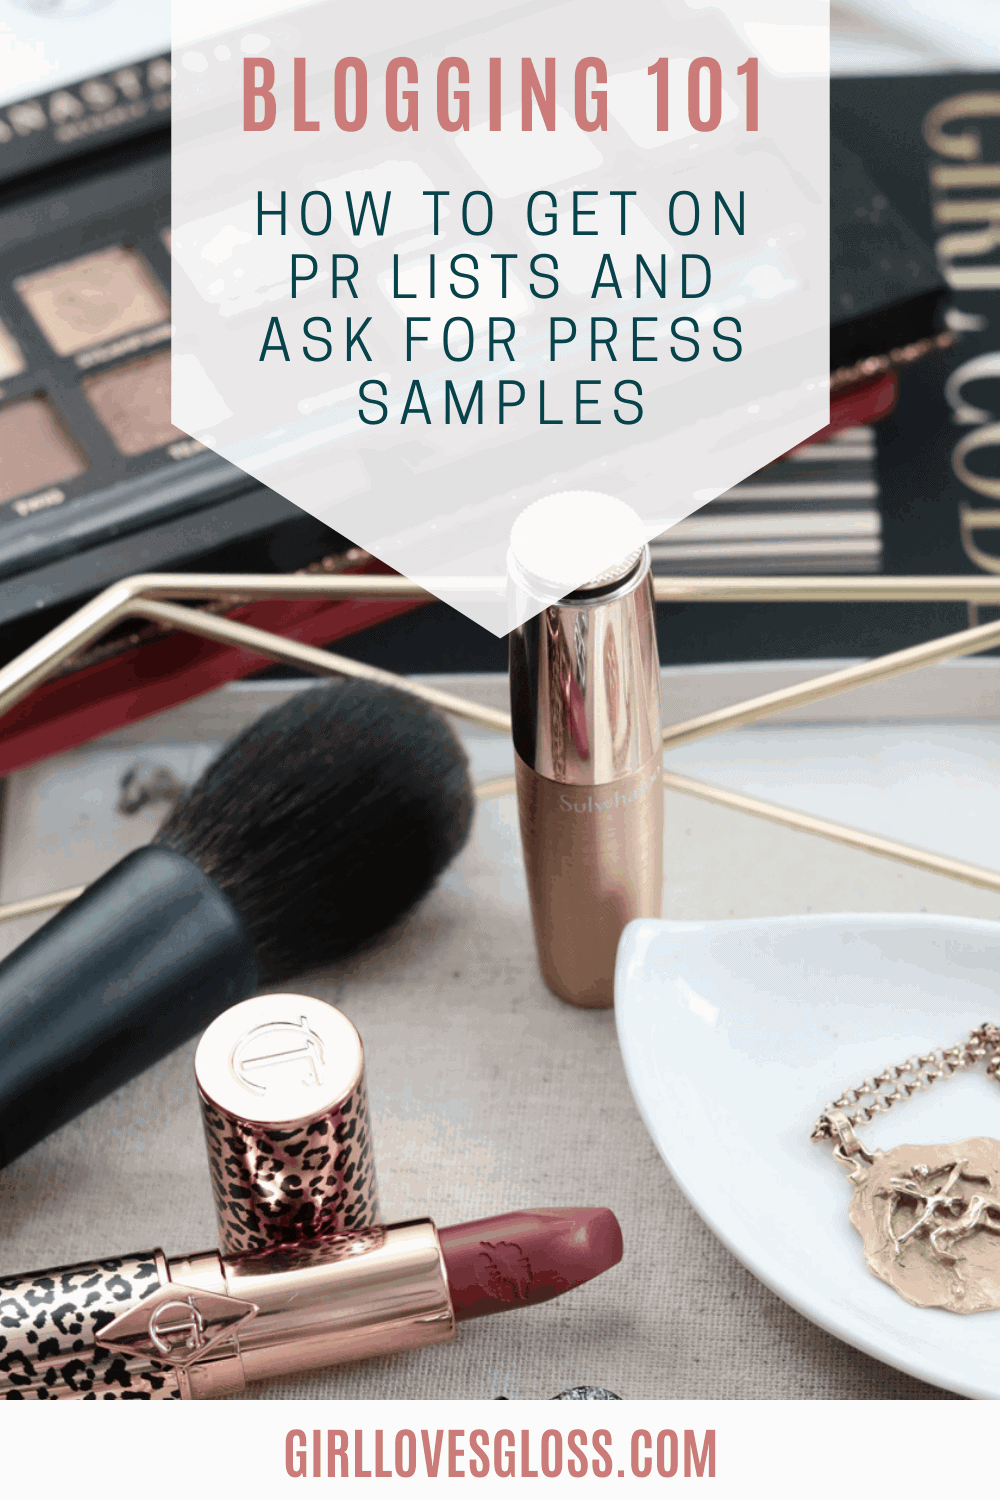 How to Ask Brands for Press Samples as a blogger or influencer